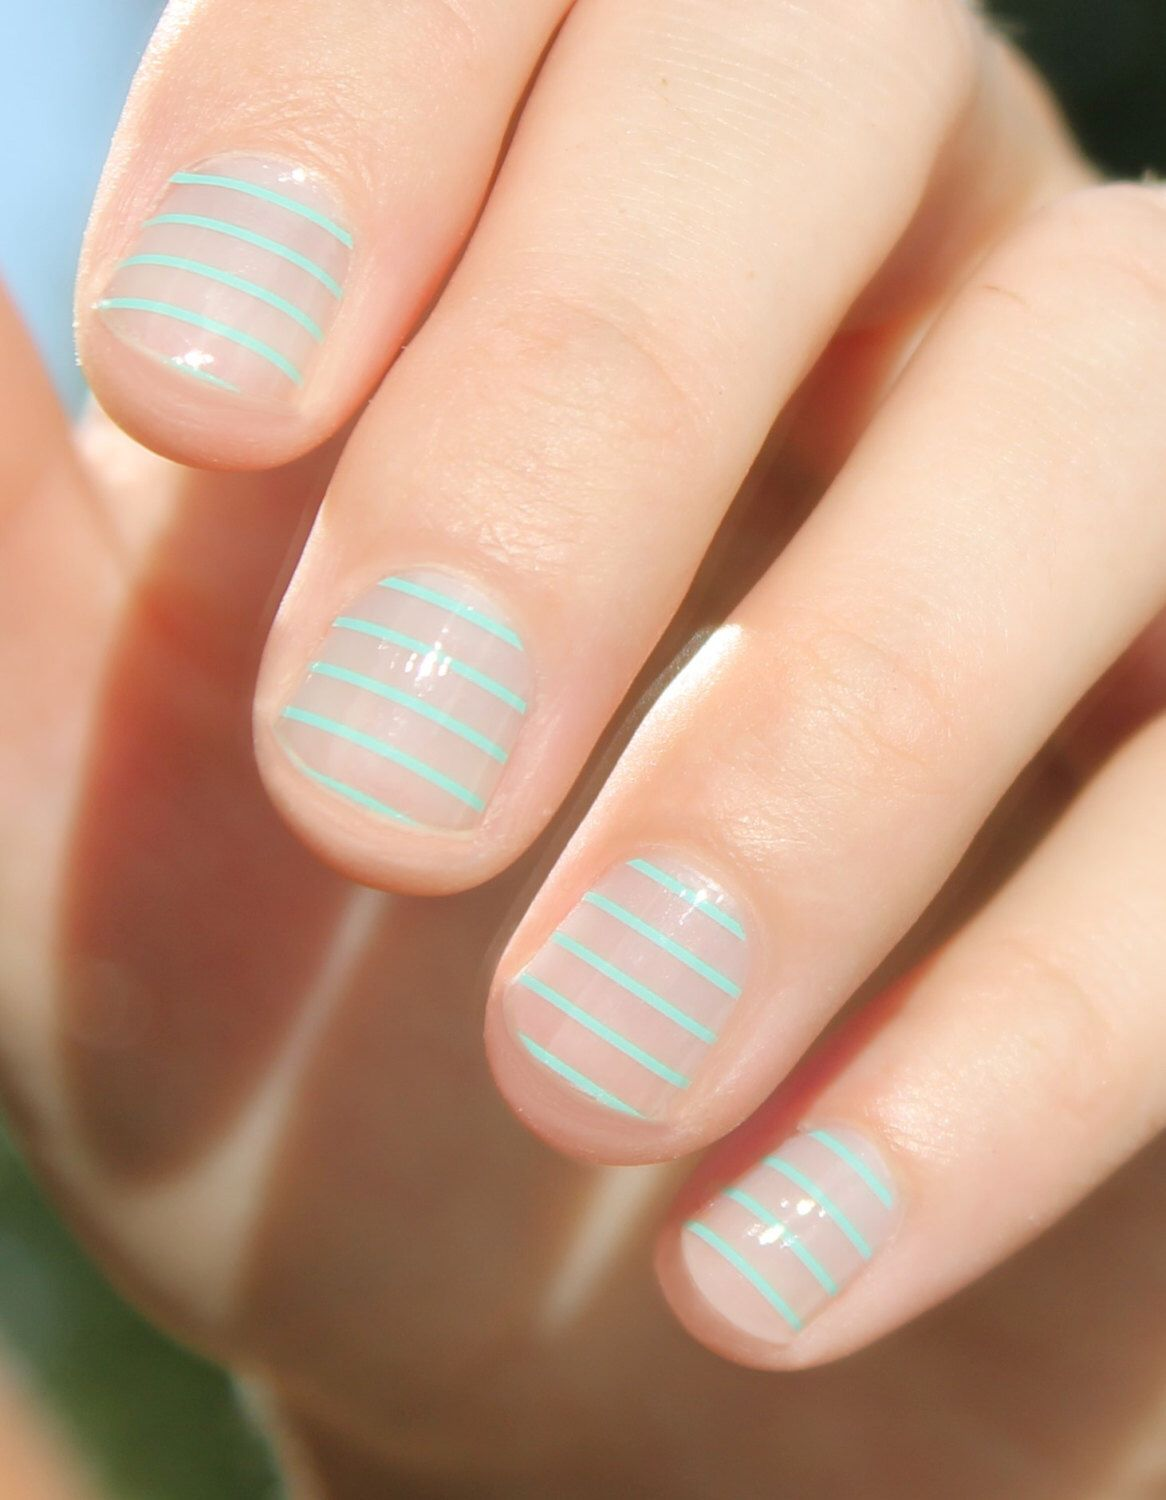 Mint Stripes Transparent Nail Wraps by SoGloss on Etsy https://www.etsy.com/listing/201658256/mint-stripes-transparent-nail-wraps